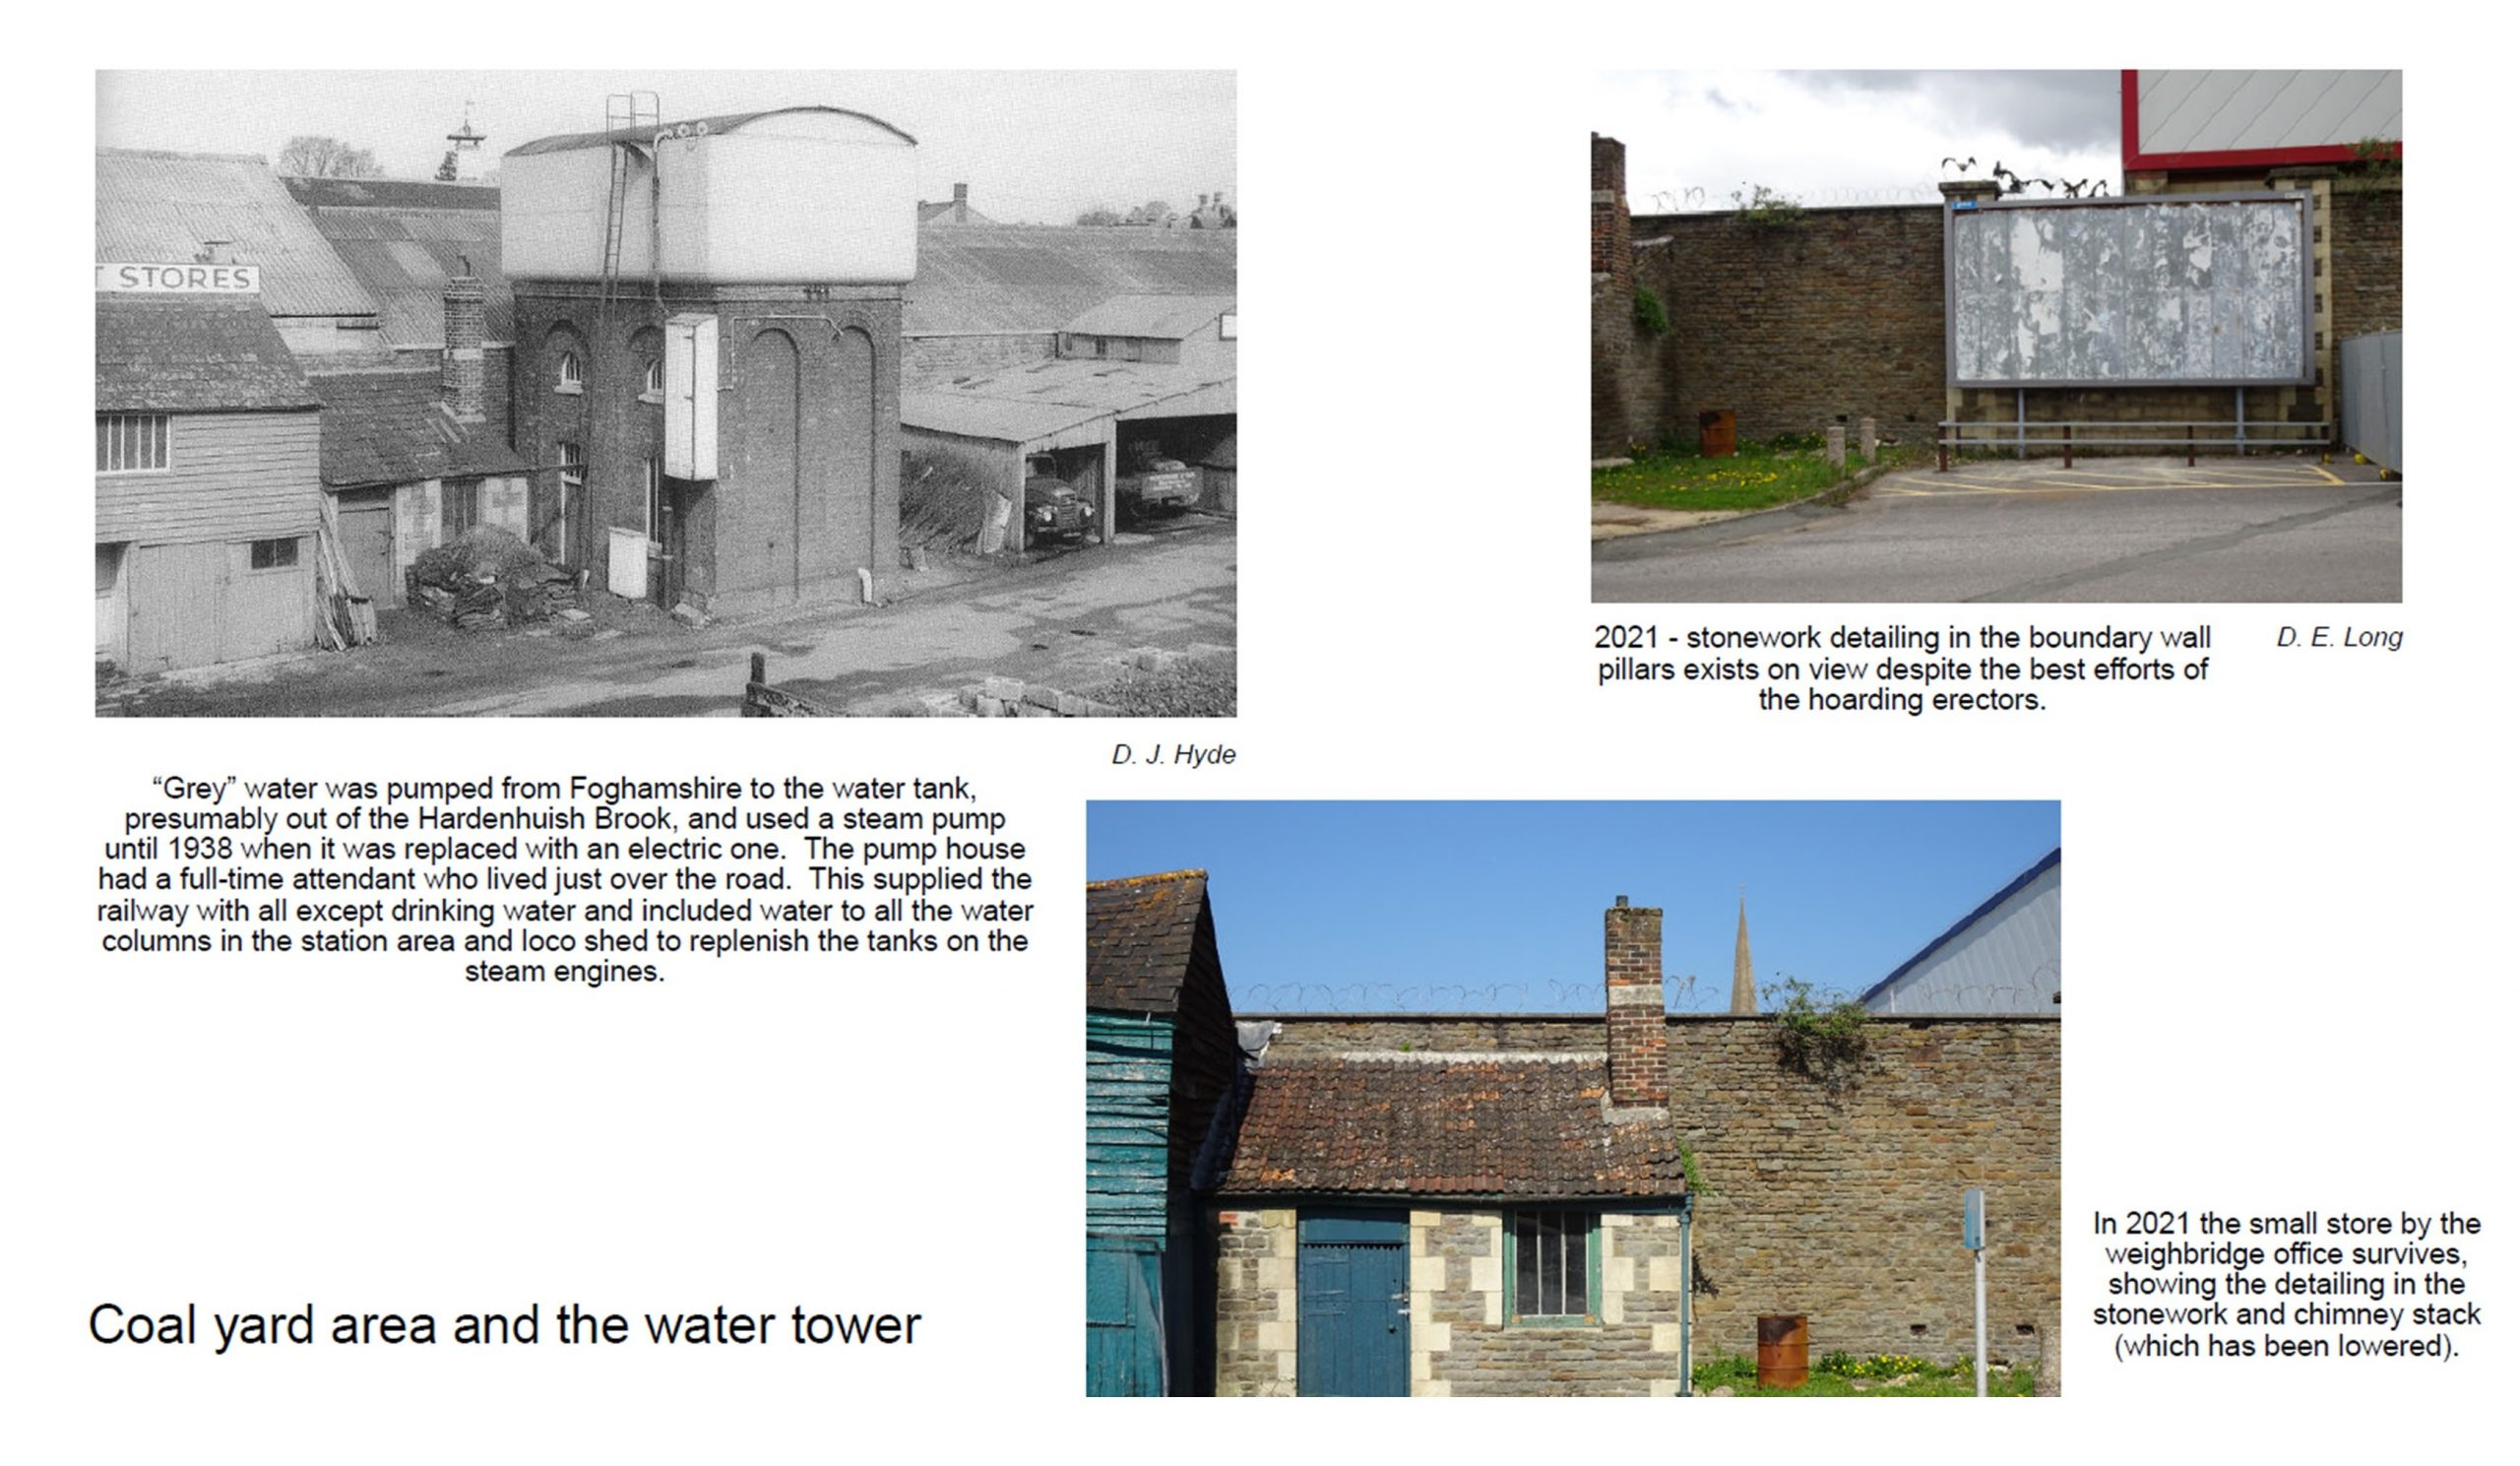 Coal yard area and water tower, the tower is no longer there but the adjacent weighbridge office is